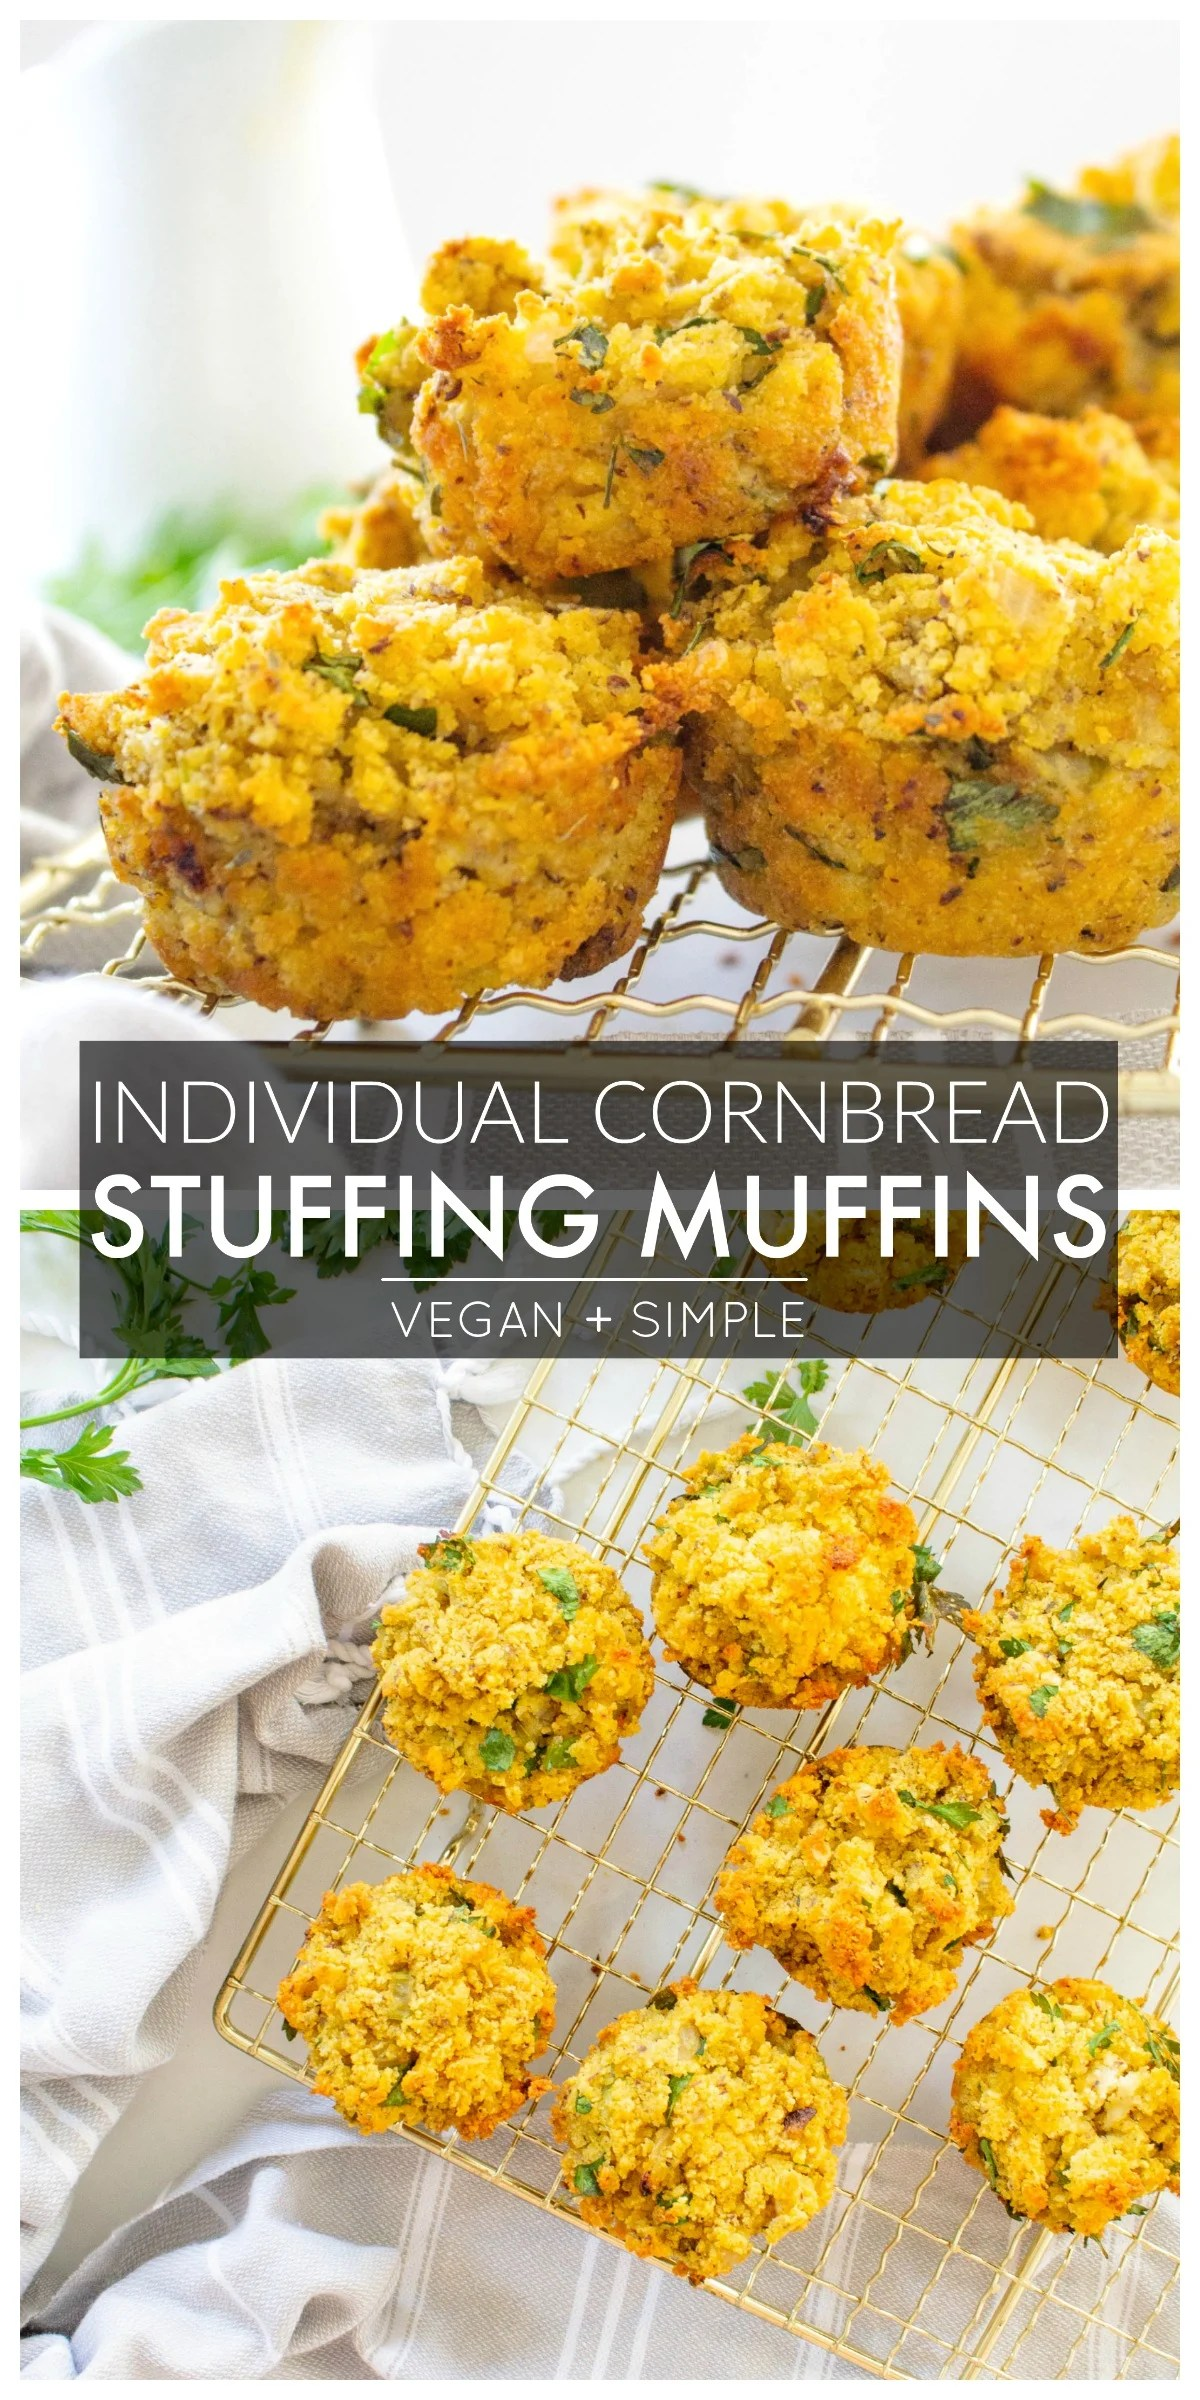 These Individual Vegan Thanksgiving Stuffing Muffins are the perfect Thanksgiving side dish. A savory cornbread mixture in a small package | ThisSavoryVegan.com #thissavoryvegan #vegan #veganthanksgiving